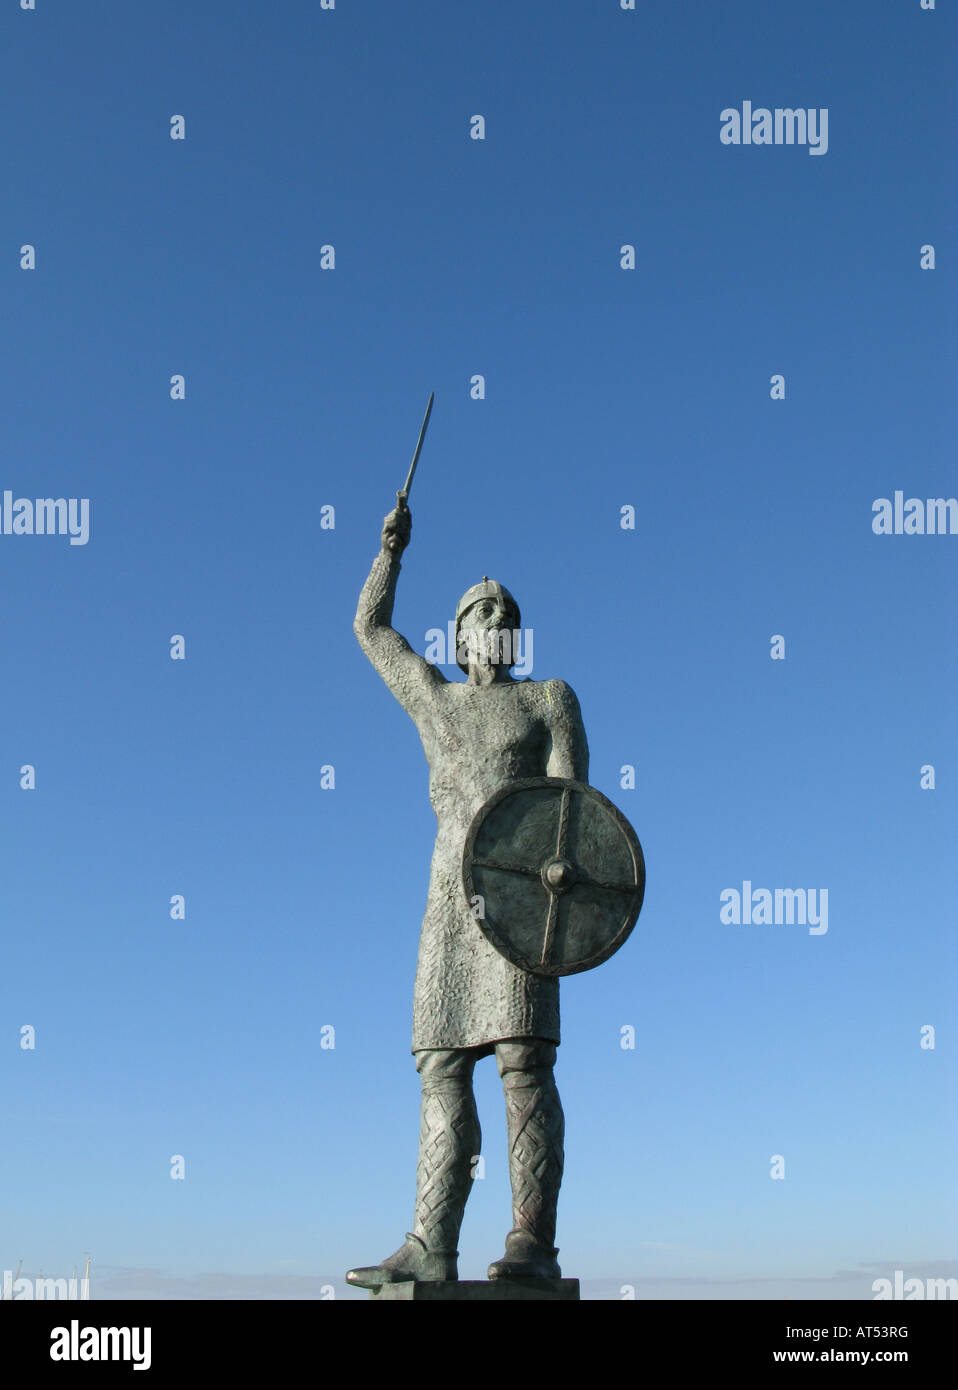 The statue of Brythnoth on the River Blackwater in Maldon Essex to commemorate the Battle of Maldon which took place - Stock Image